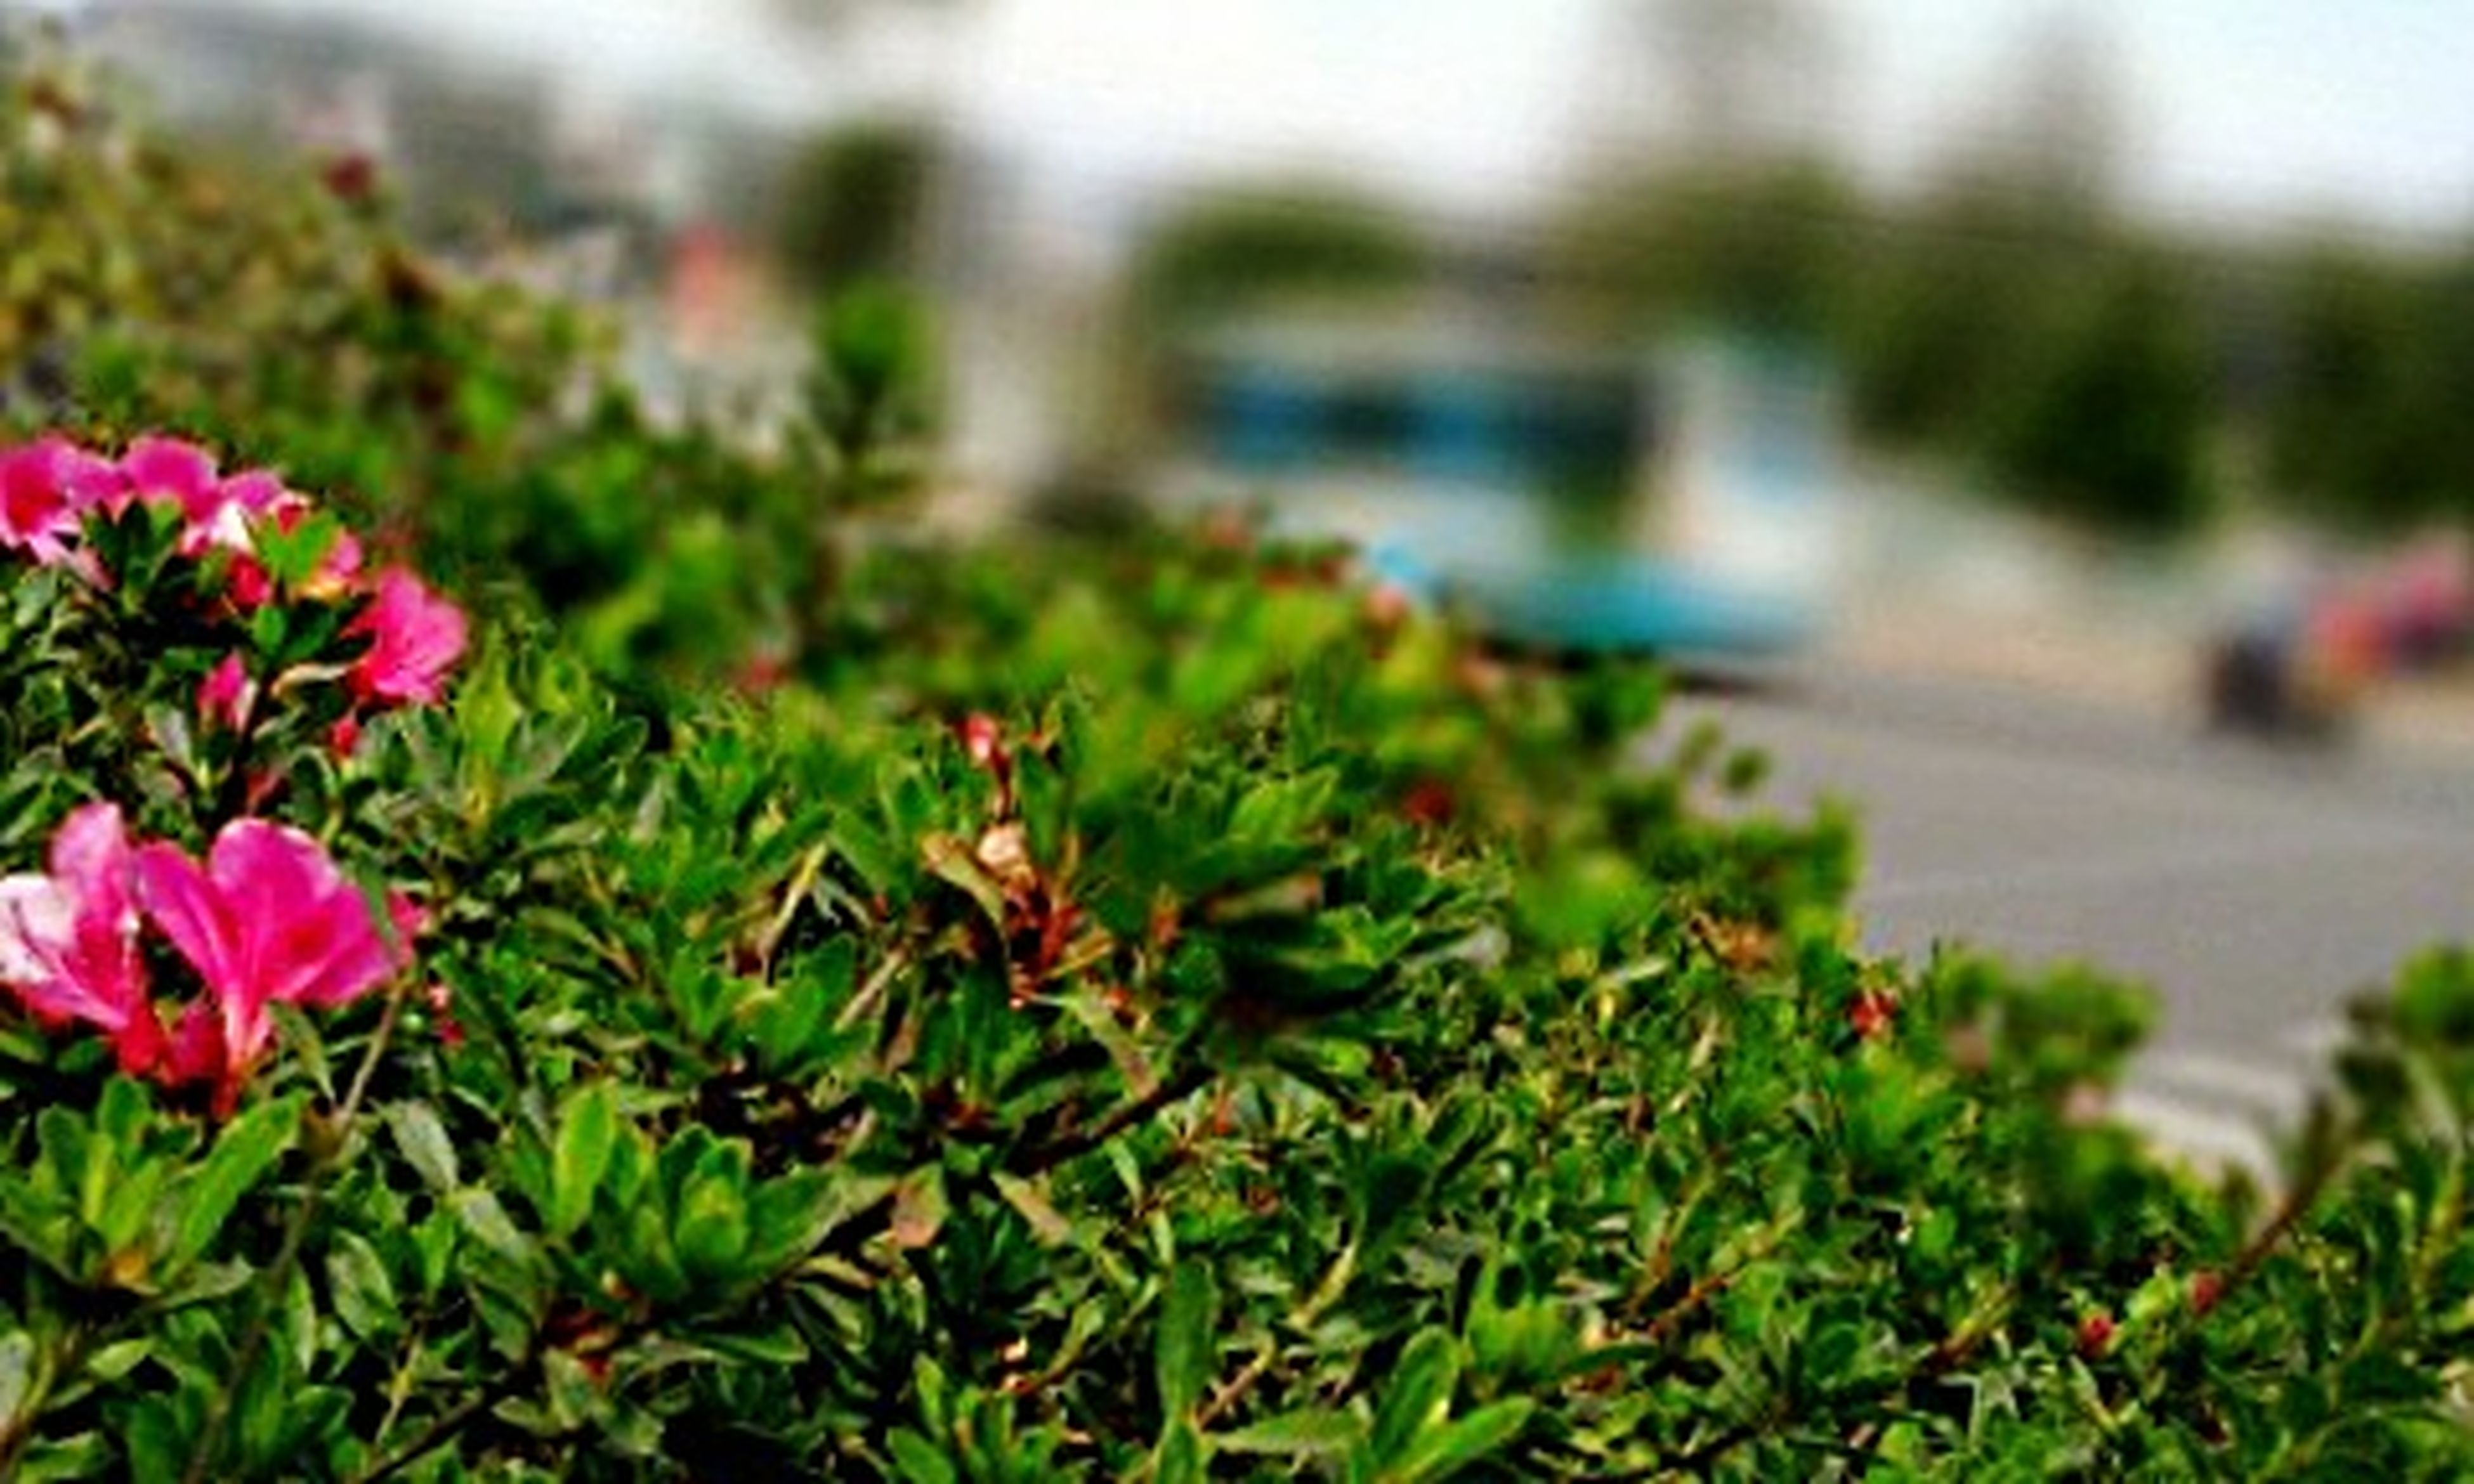 flower, focus on foreground, growth, plant, freshness, fragility, nature, close-up, beauty in nature, selective focus, green color, blooming, leaf, day, petal, outdoors, park - man made space, growing, water, pink color